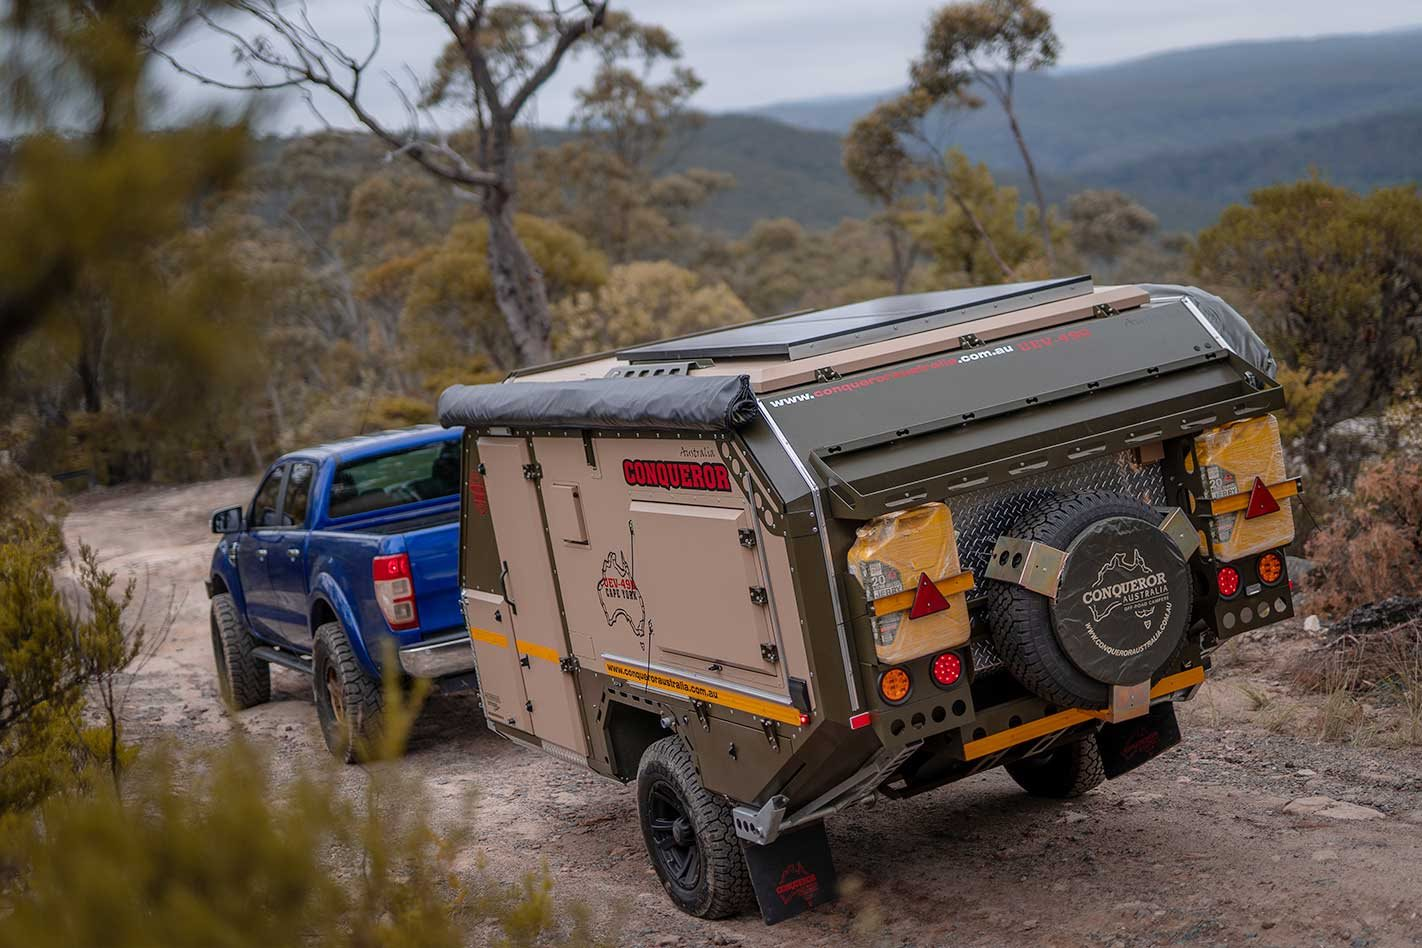 4x4 Camper Trailer buyers' guide